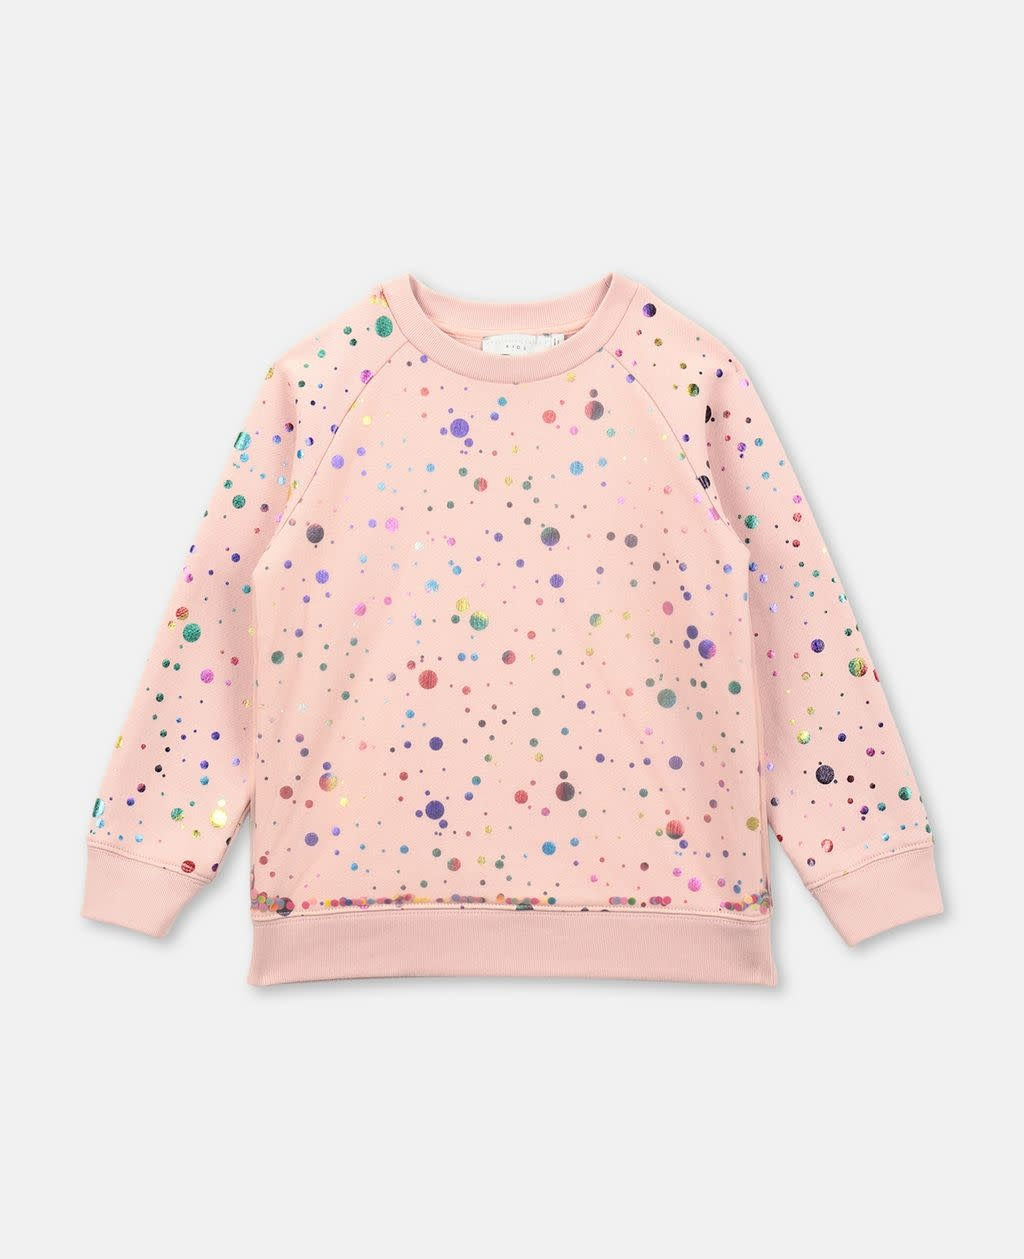 STELLA MCCARTNEY Sequins Tulle Layer Sweatshirt